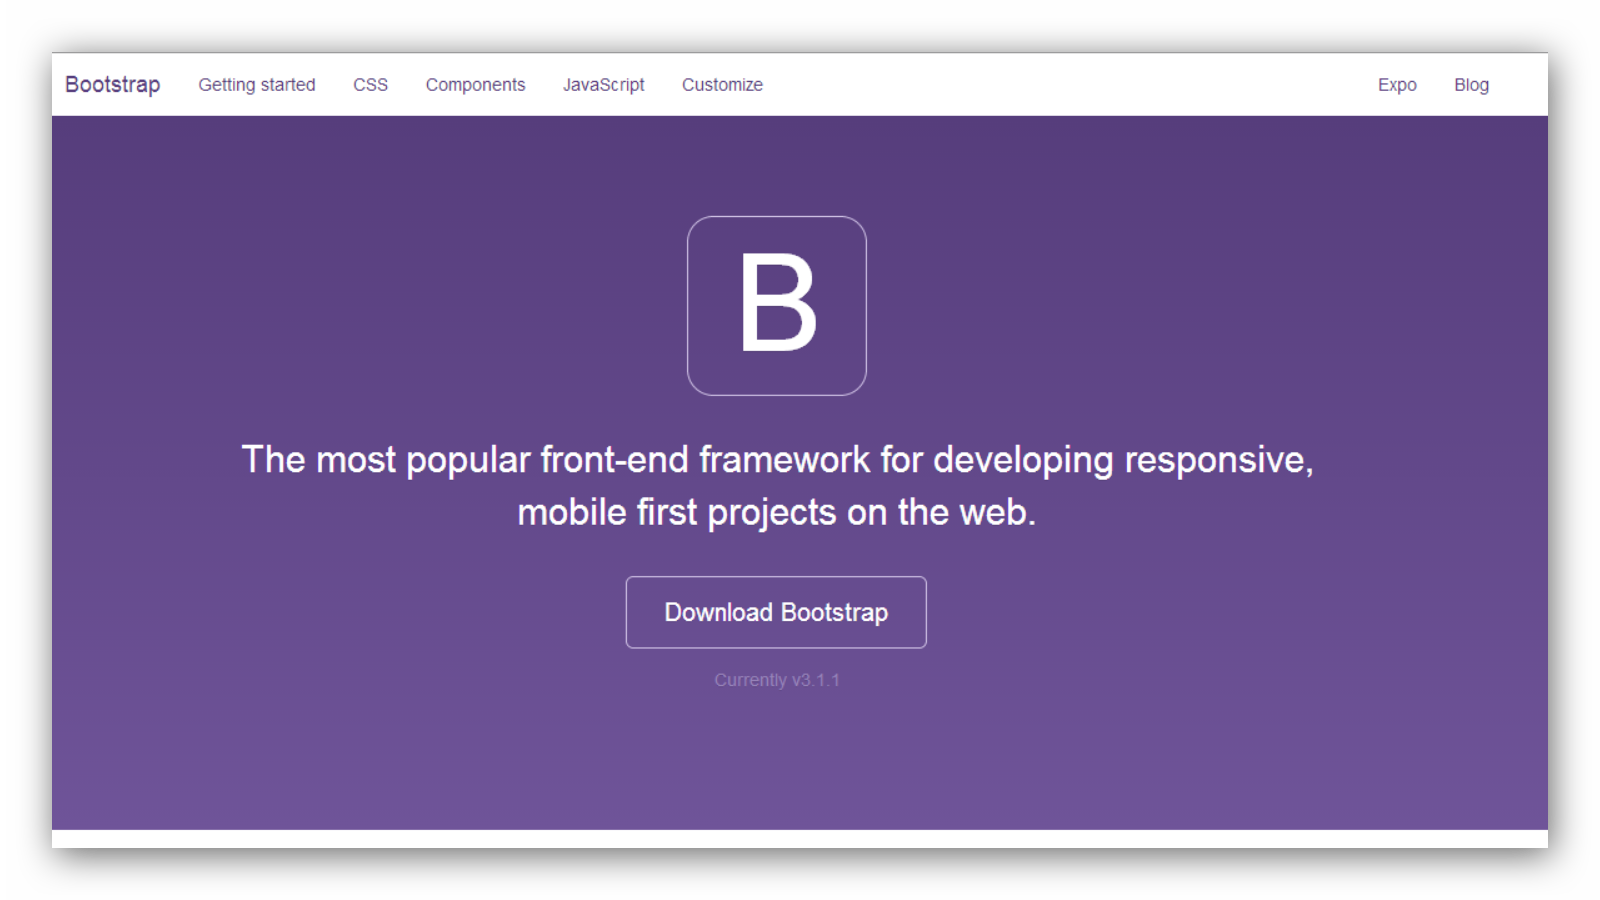 Bootstrap-page